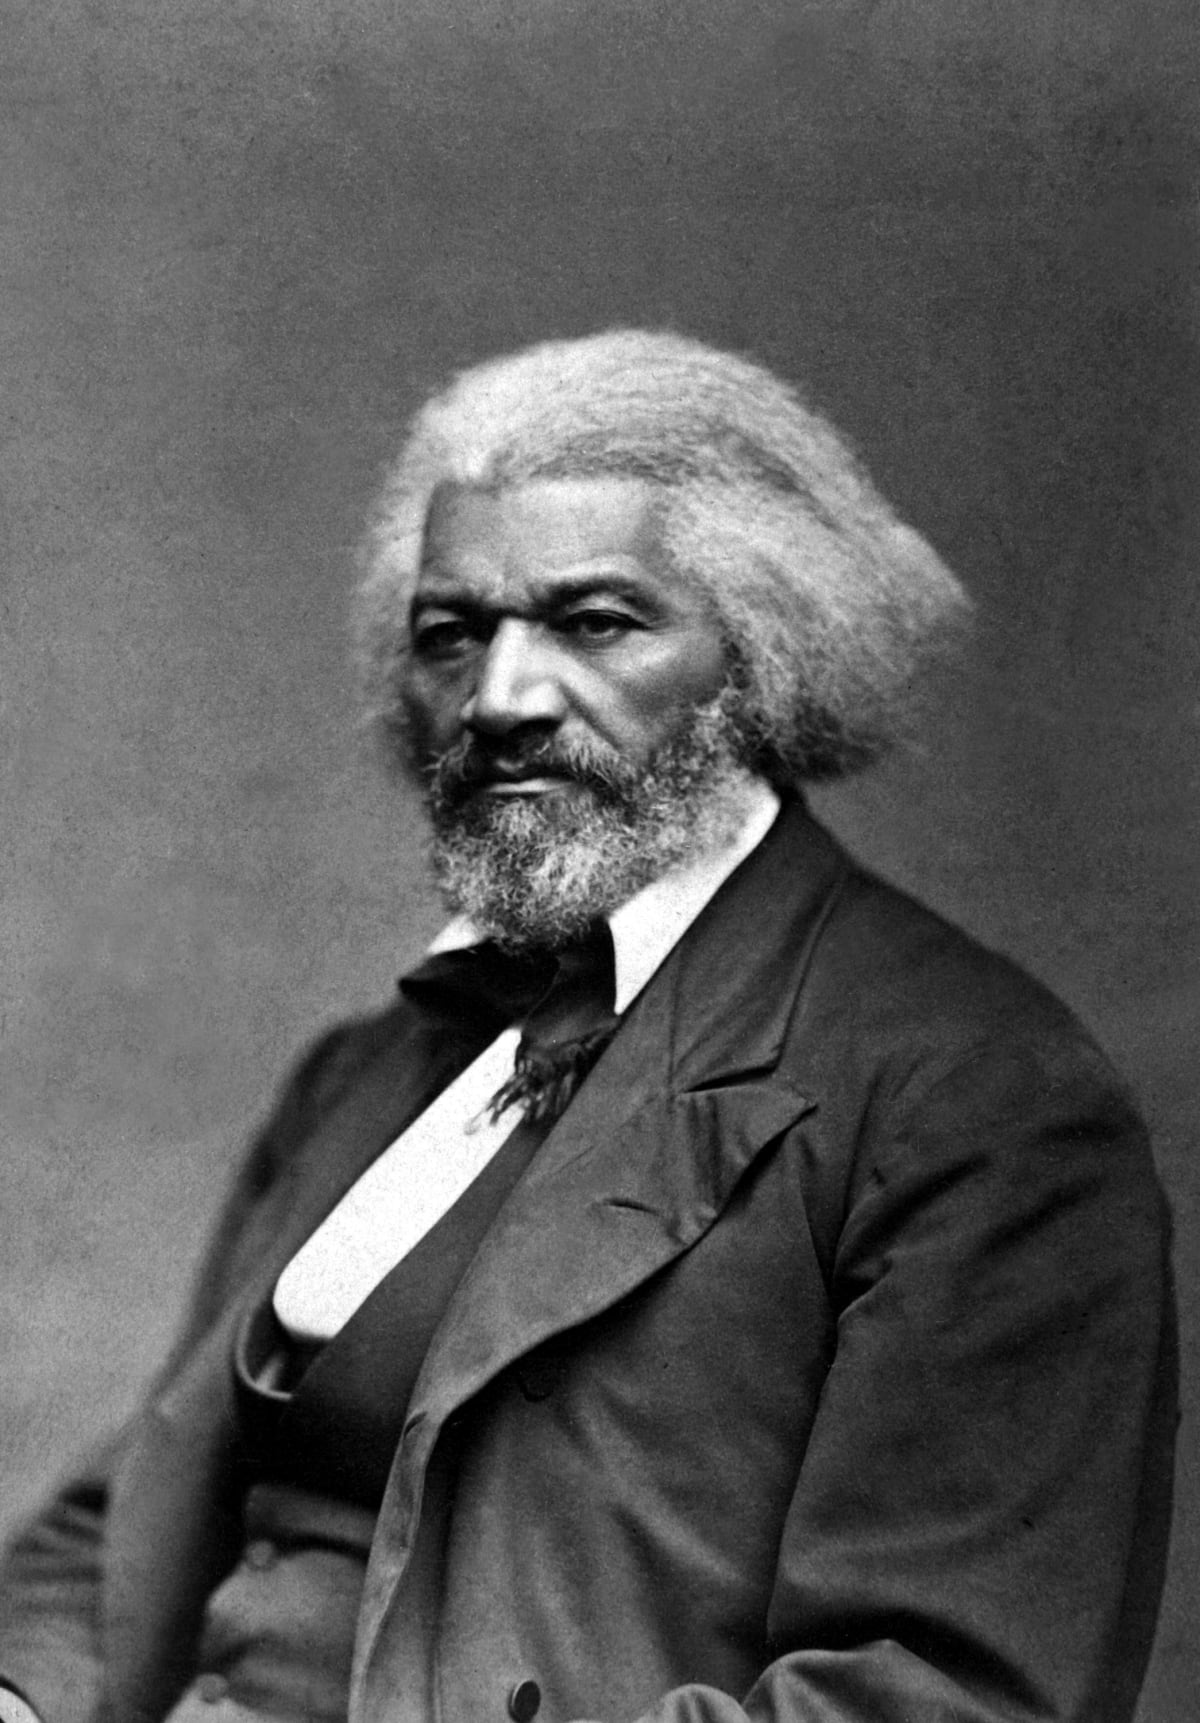 """Group exhibition """"Frederick Douglass: Embers of Freedom"""" to include TR Ericsson"""